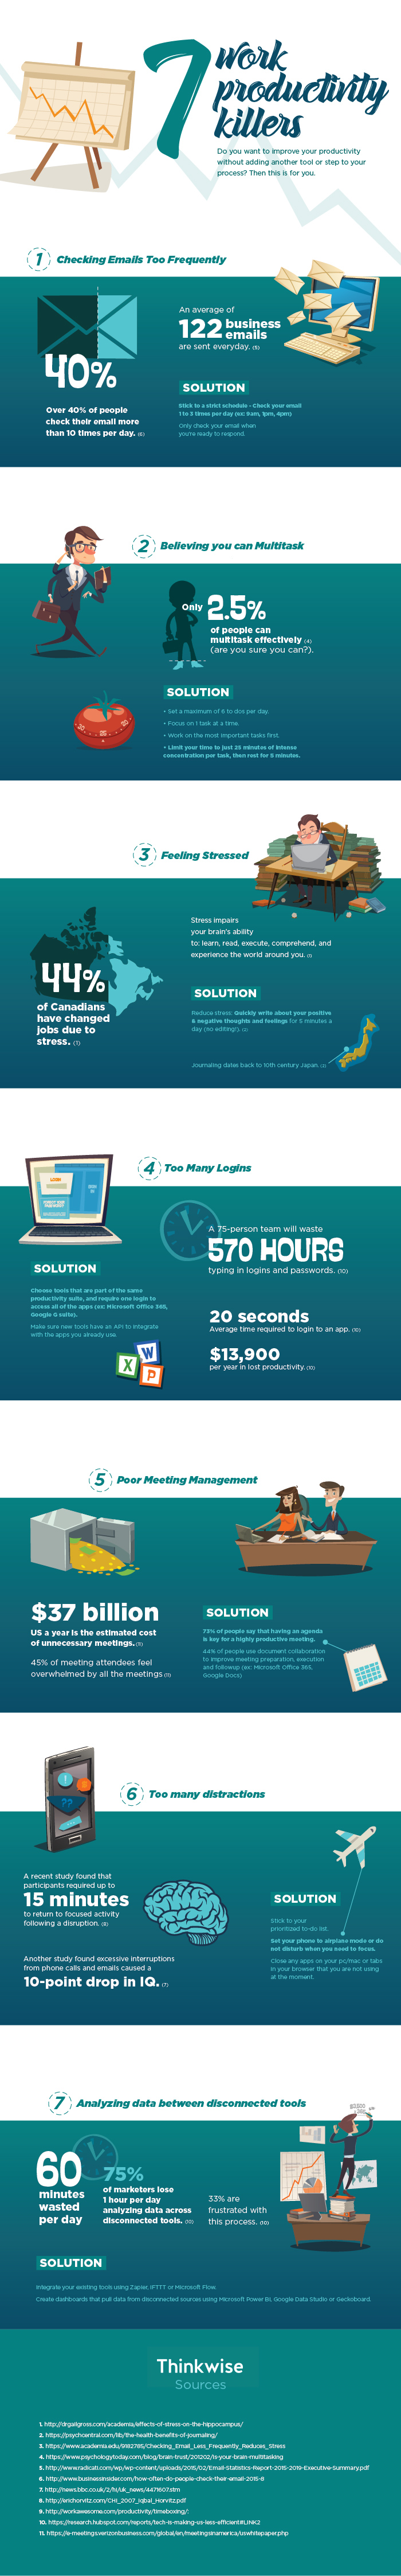 Work-Productivity-Infographic-Thinkwise.jpg